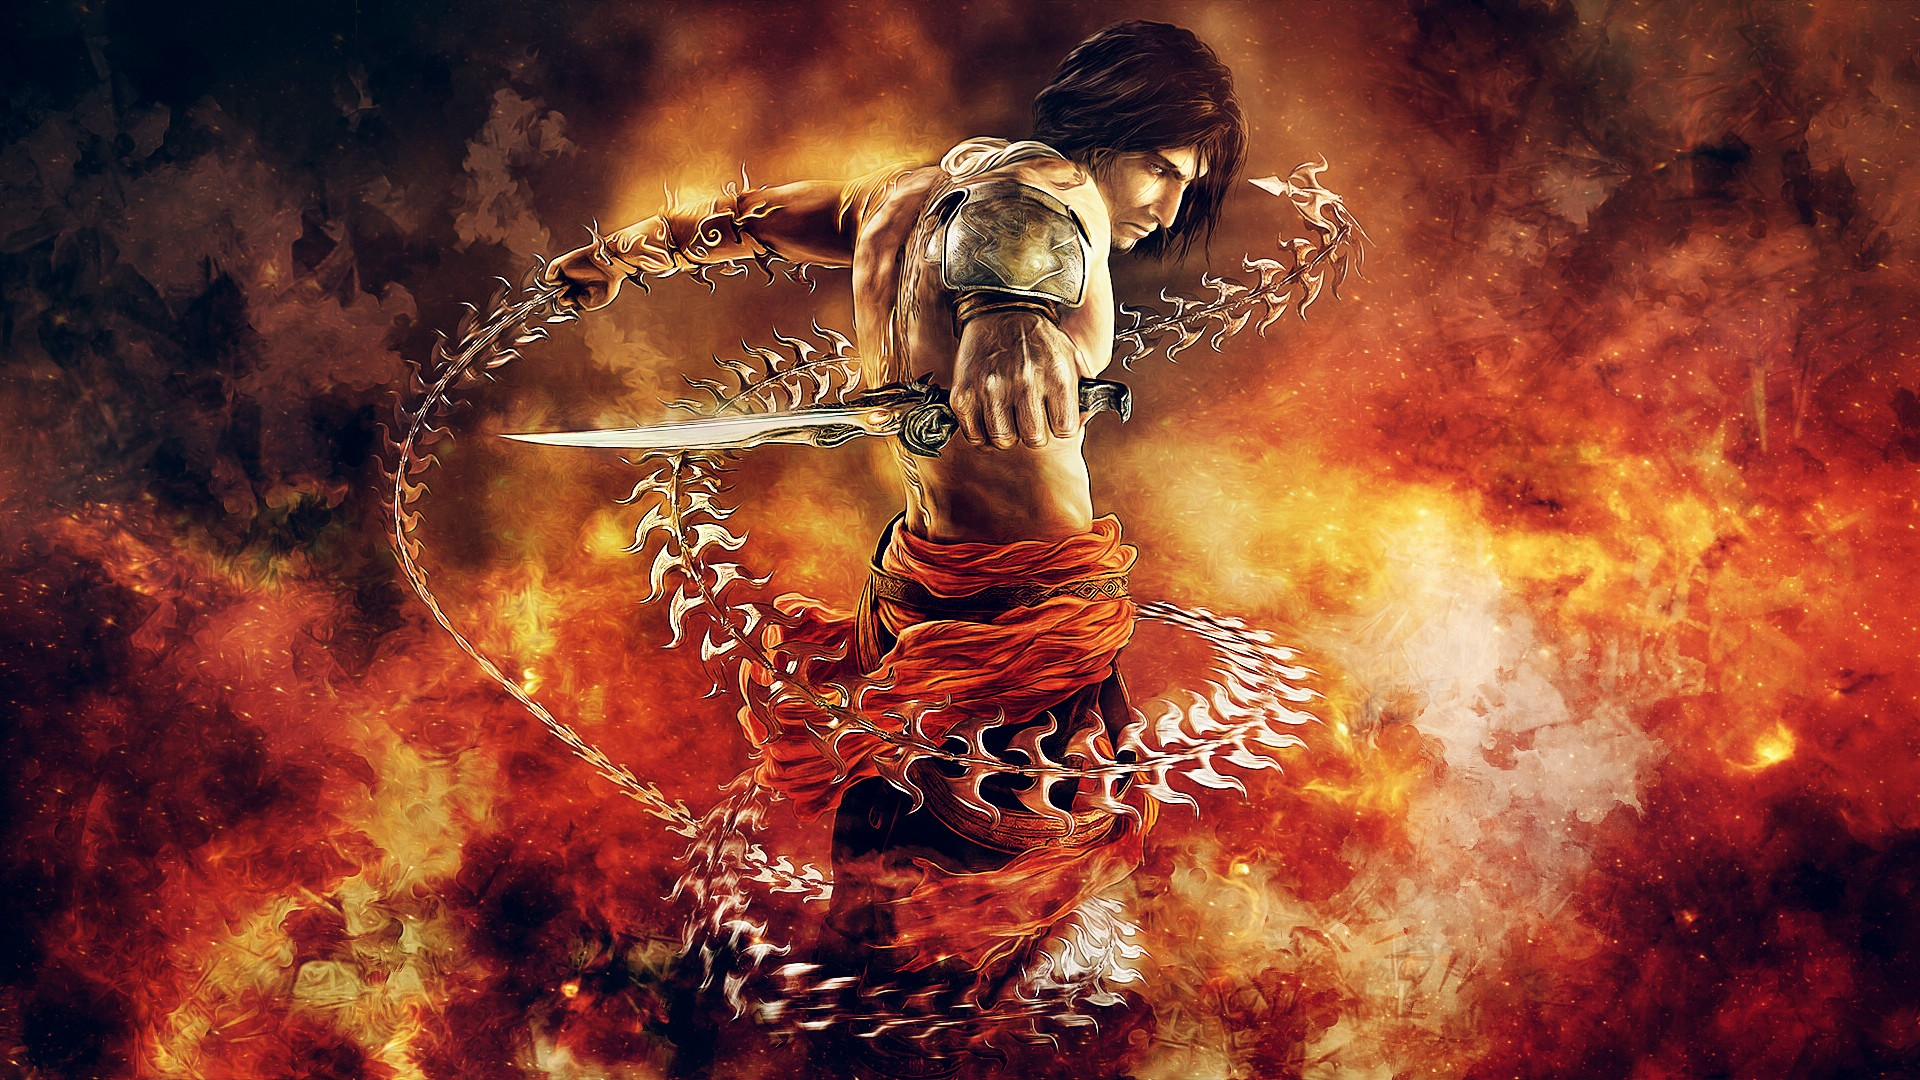 Prince of persia the two thrones full hd wallpaper and - Prince wallpaper ...